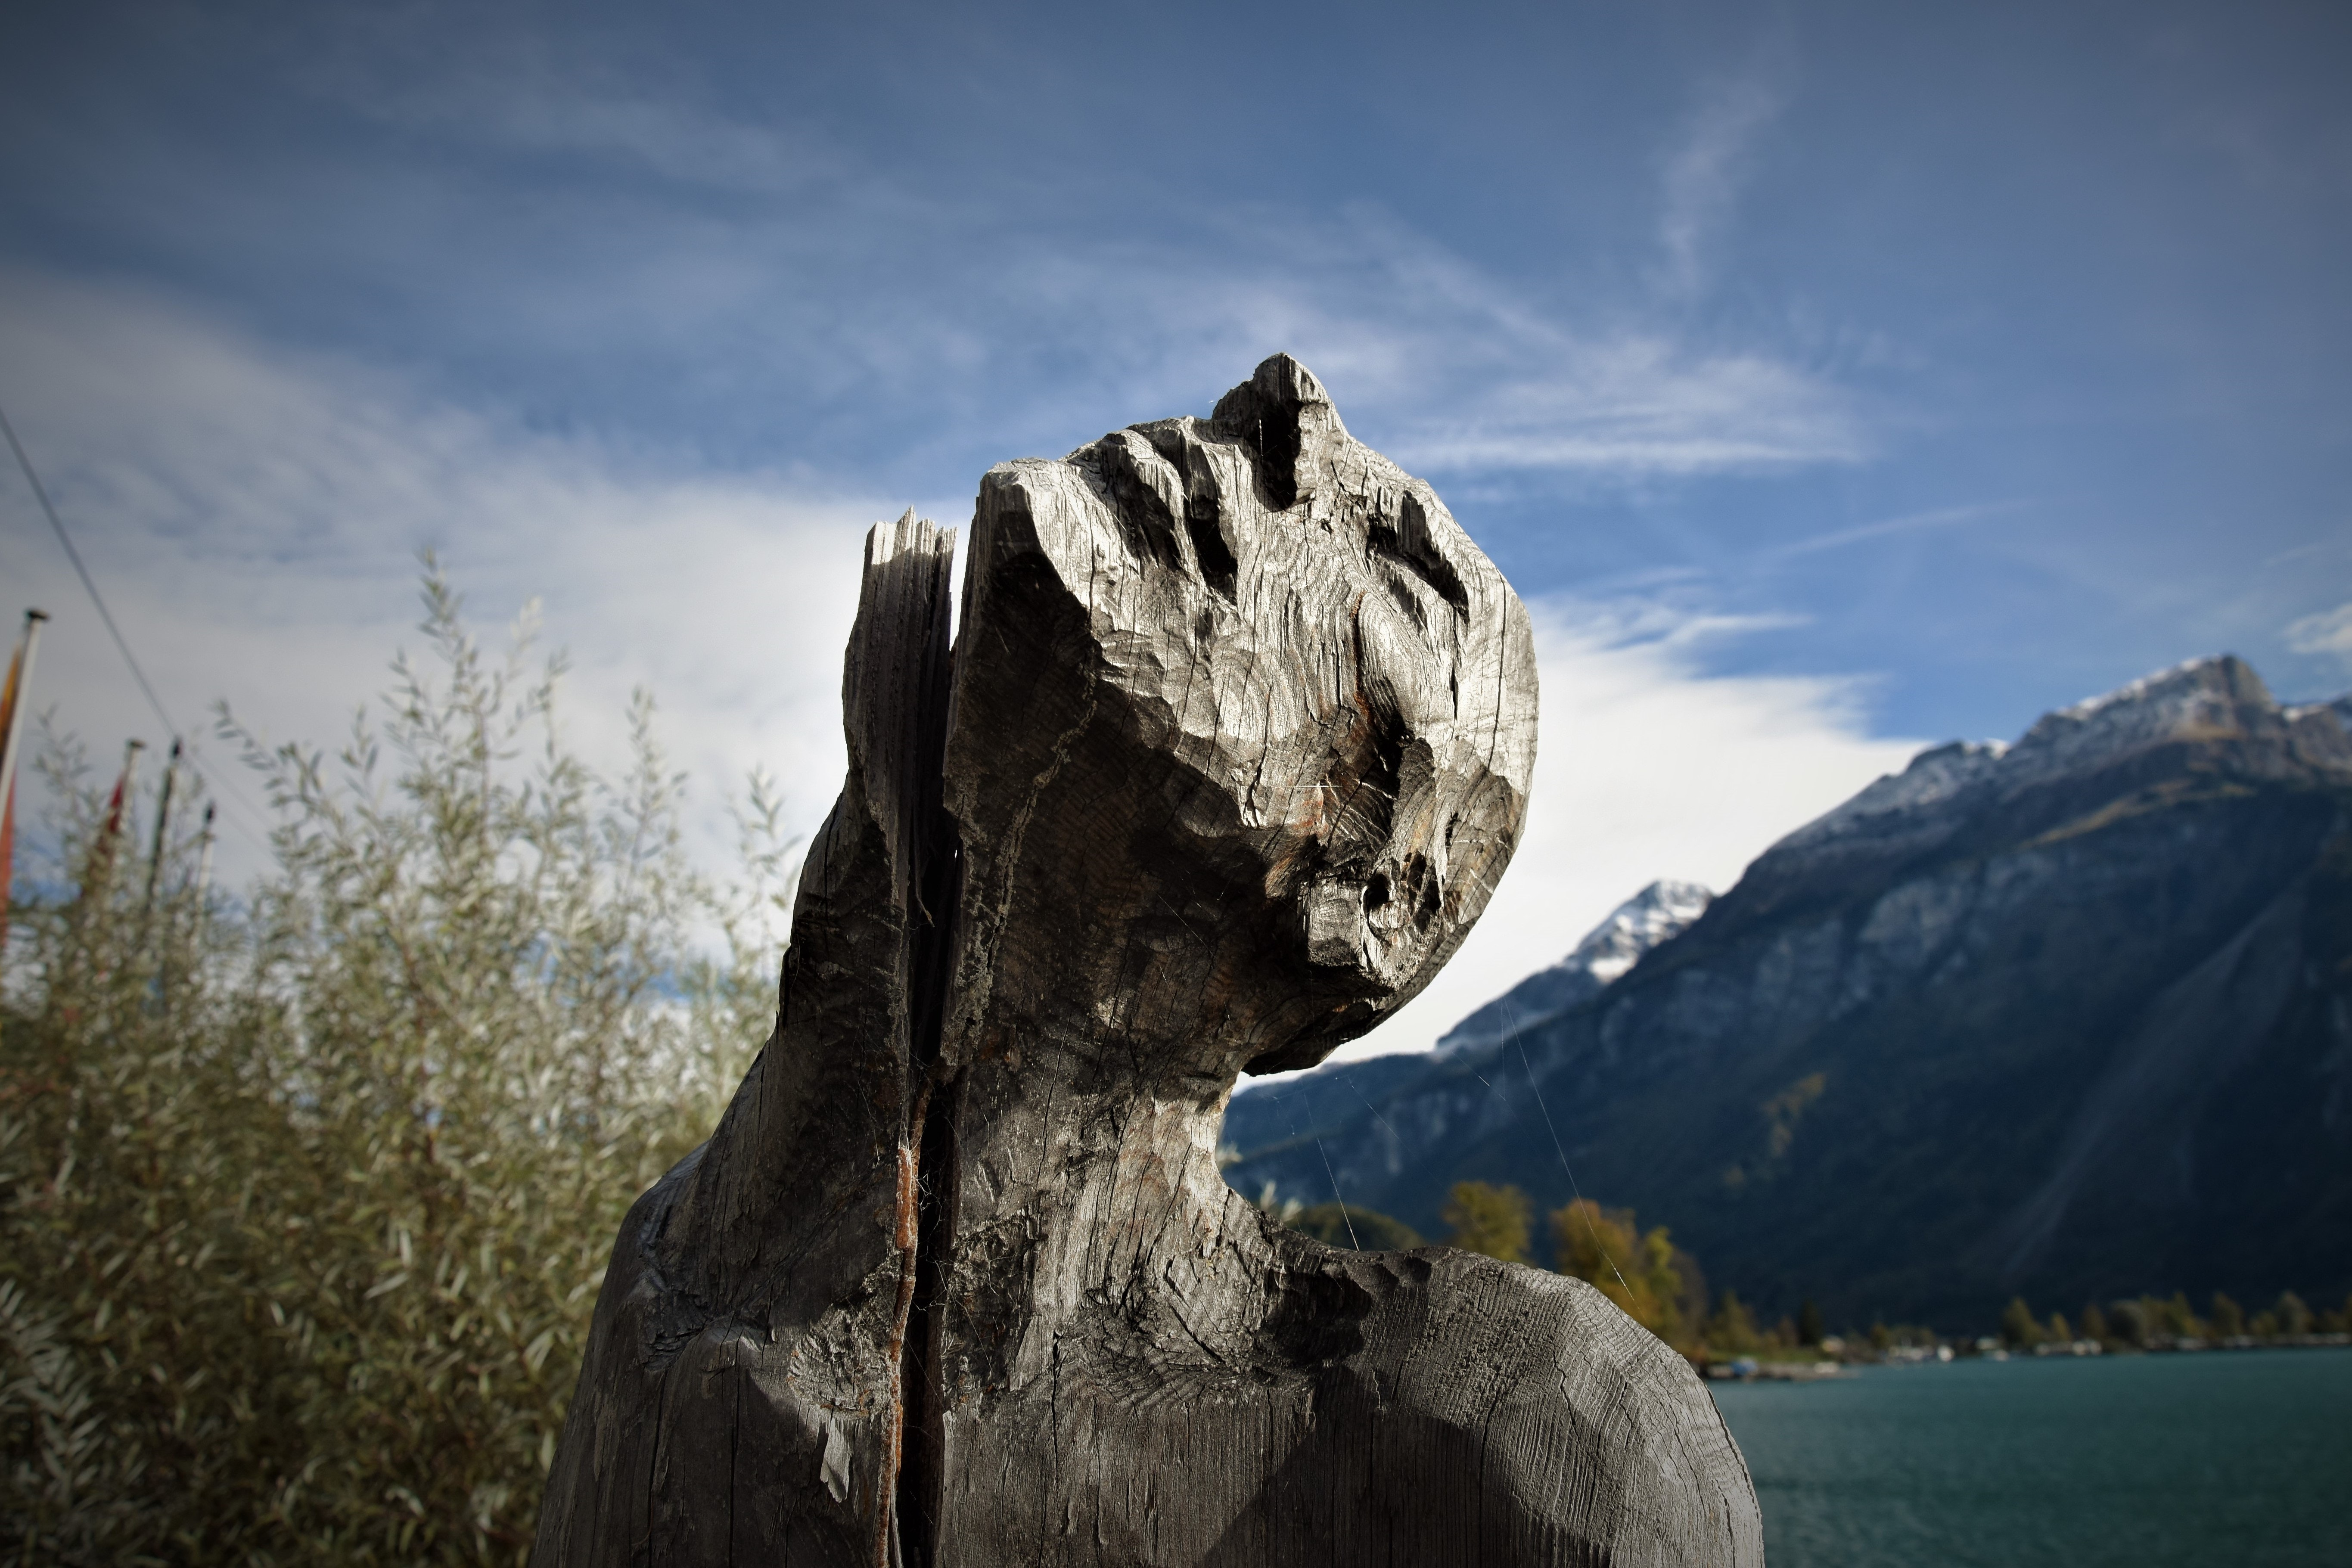 Gray Man Carved Stone Photography, Art, Profile, Water, Trees, HQ Photo